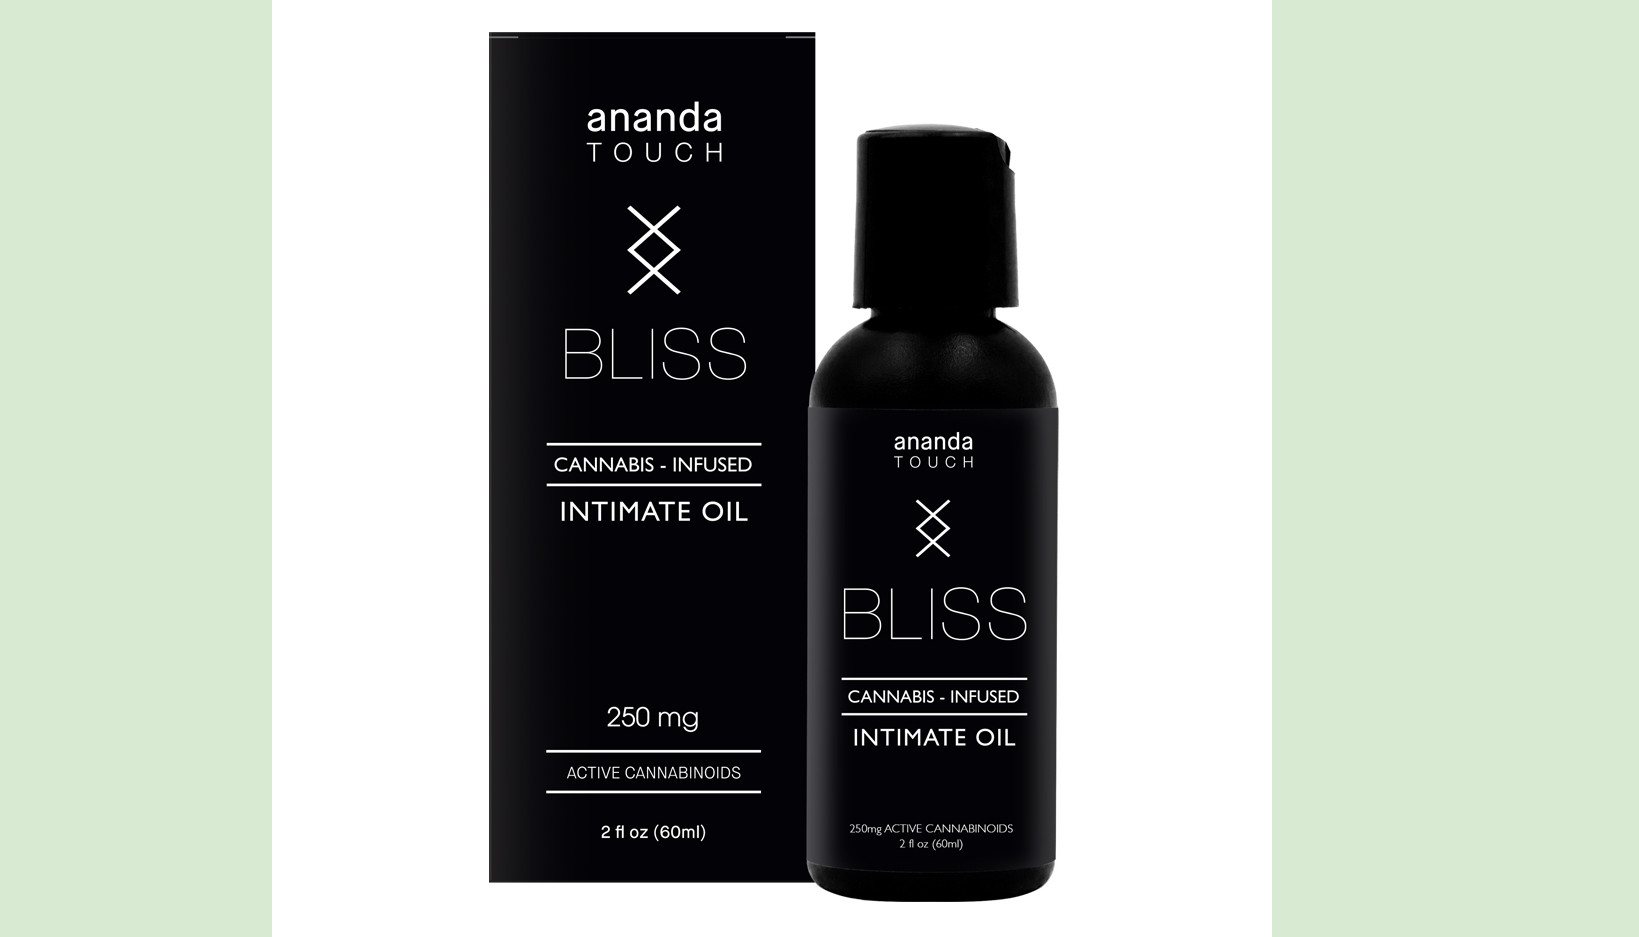 Ananda_Touch_Bliss